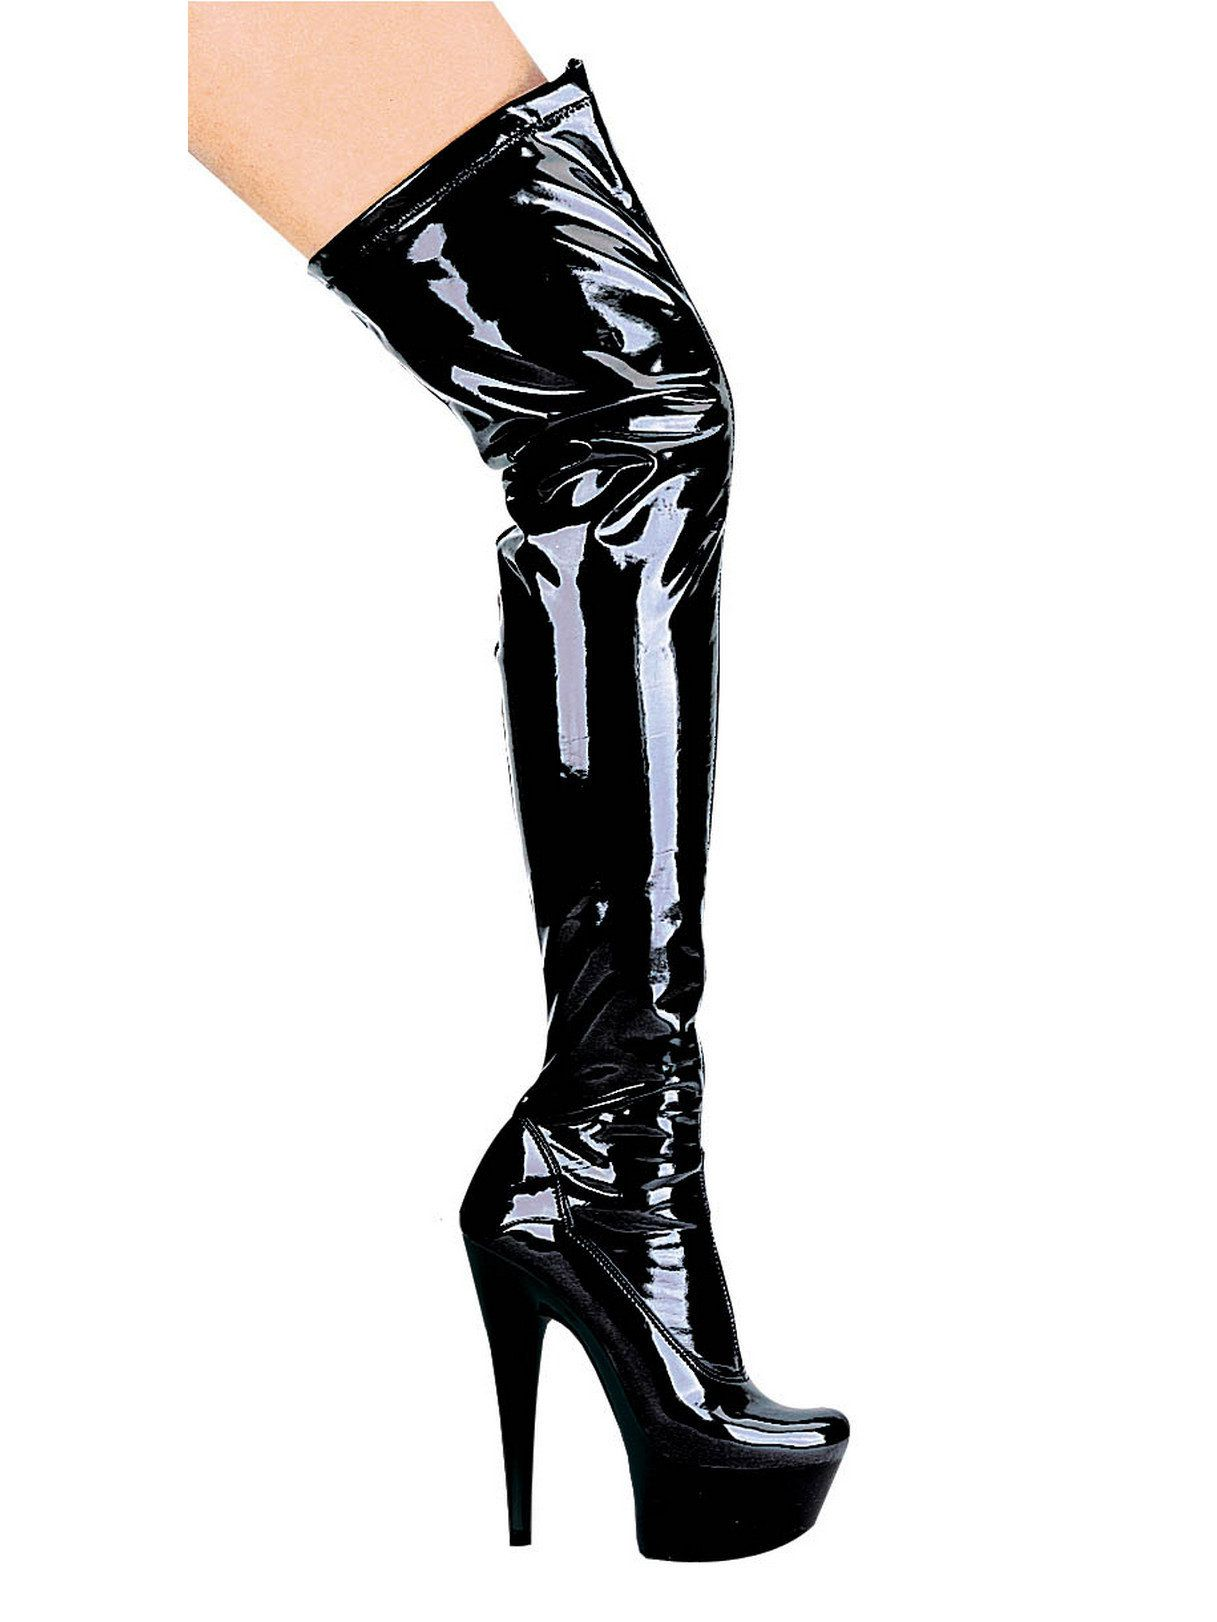 Thigh High Boots Costume